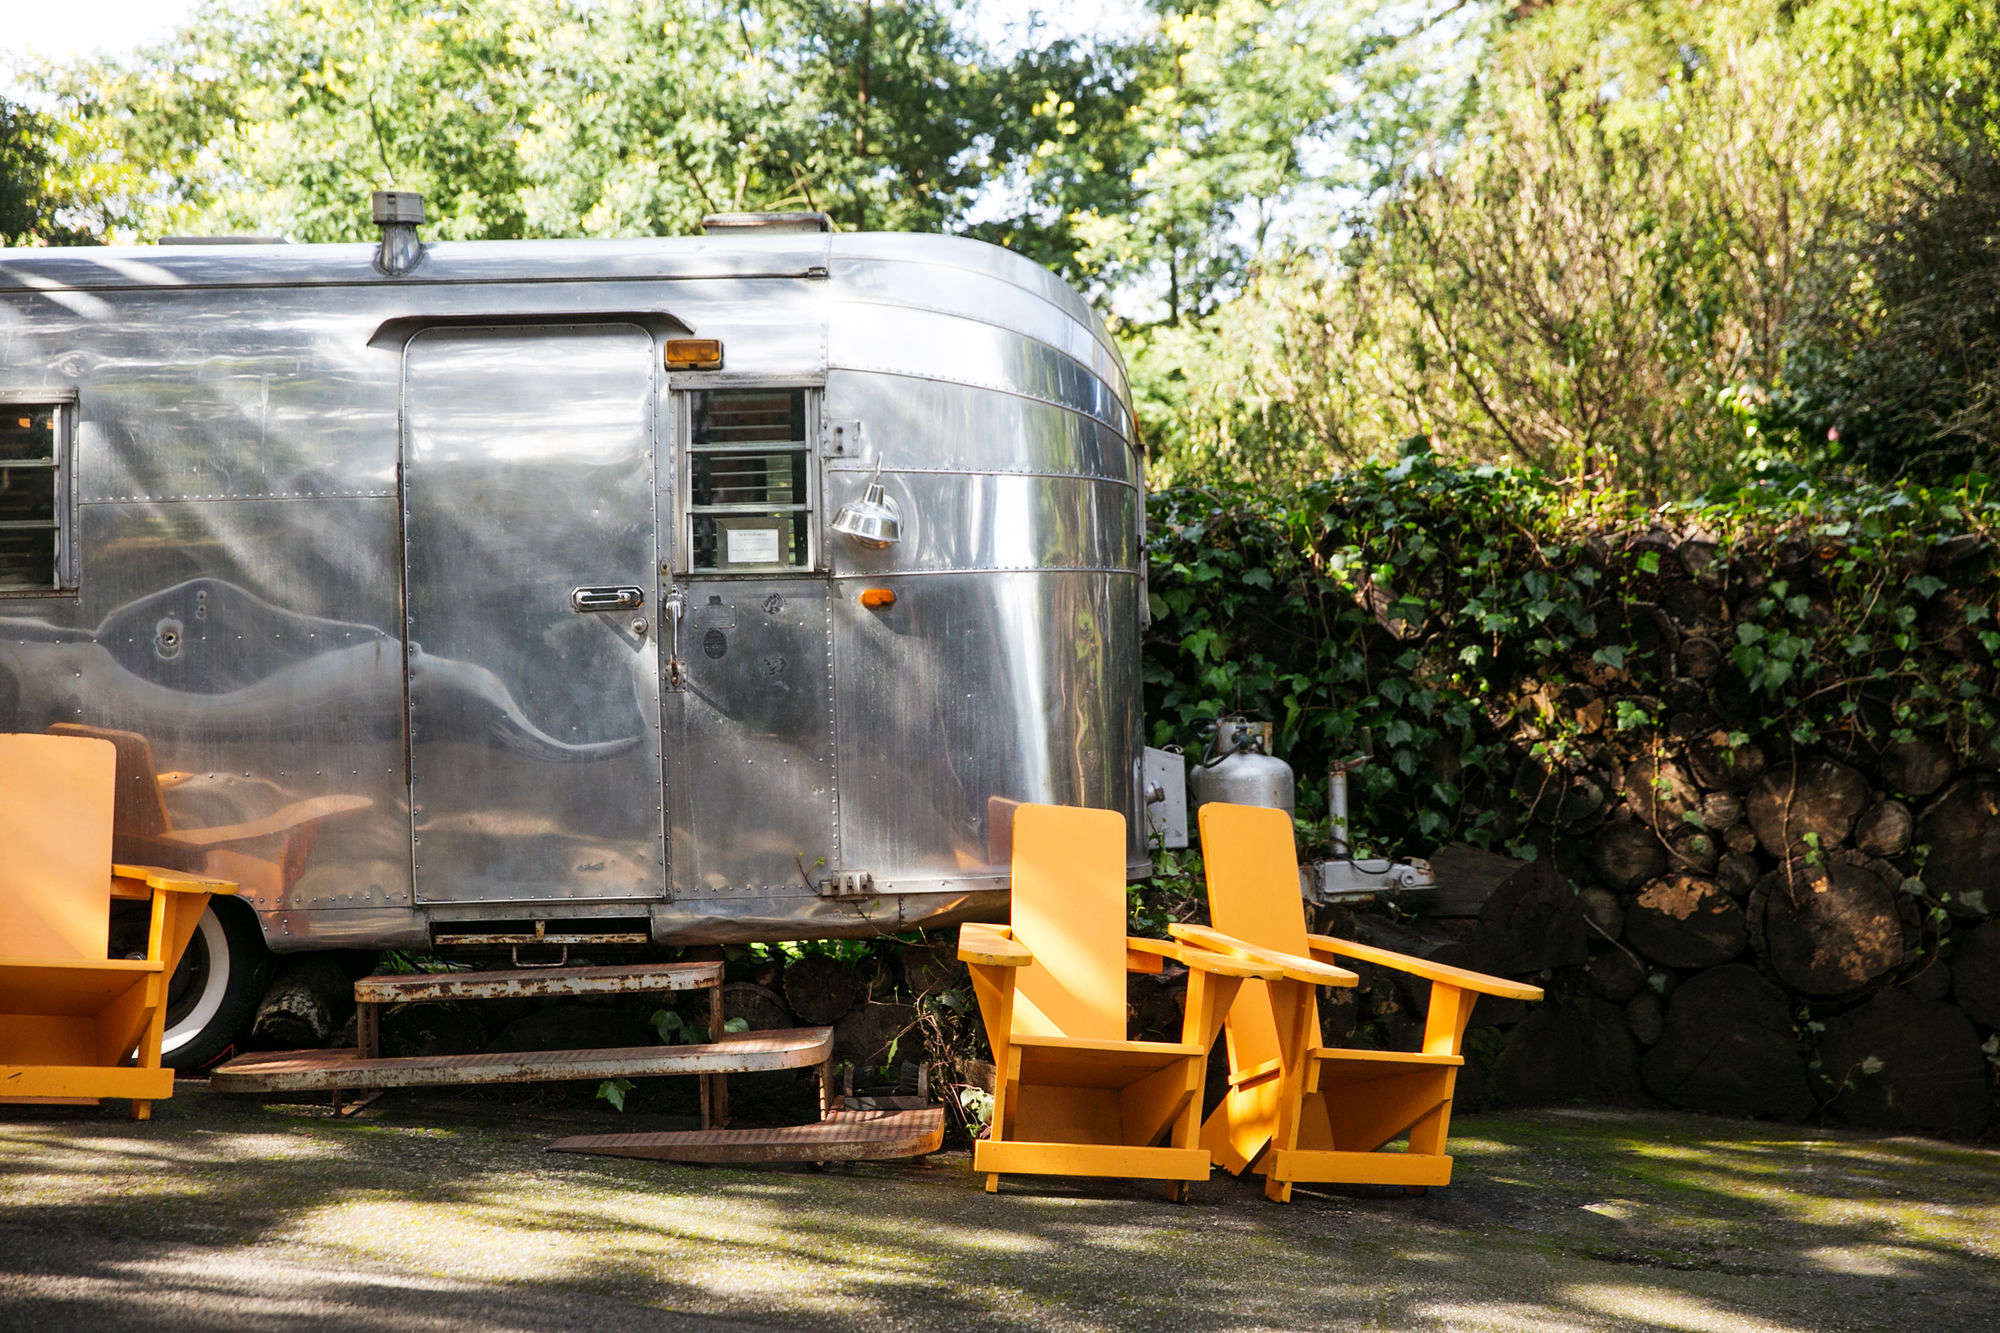 a large airstream trailer serves as an office and check in counter. 10